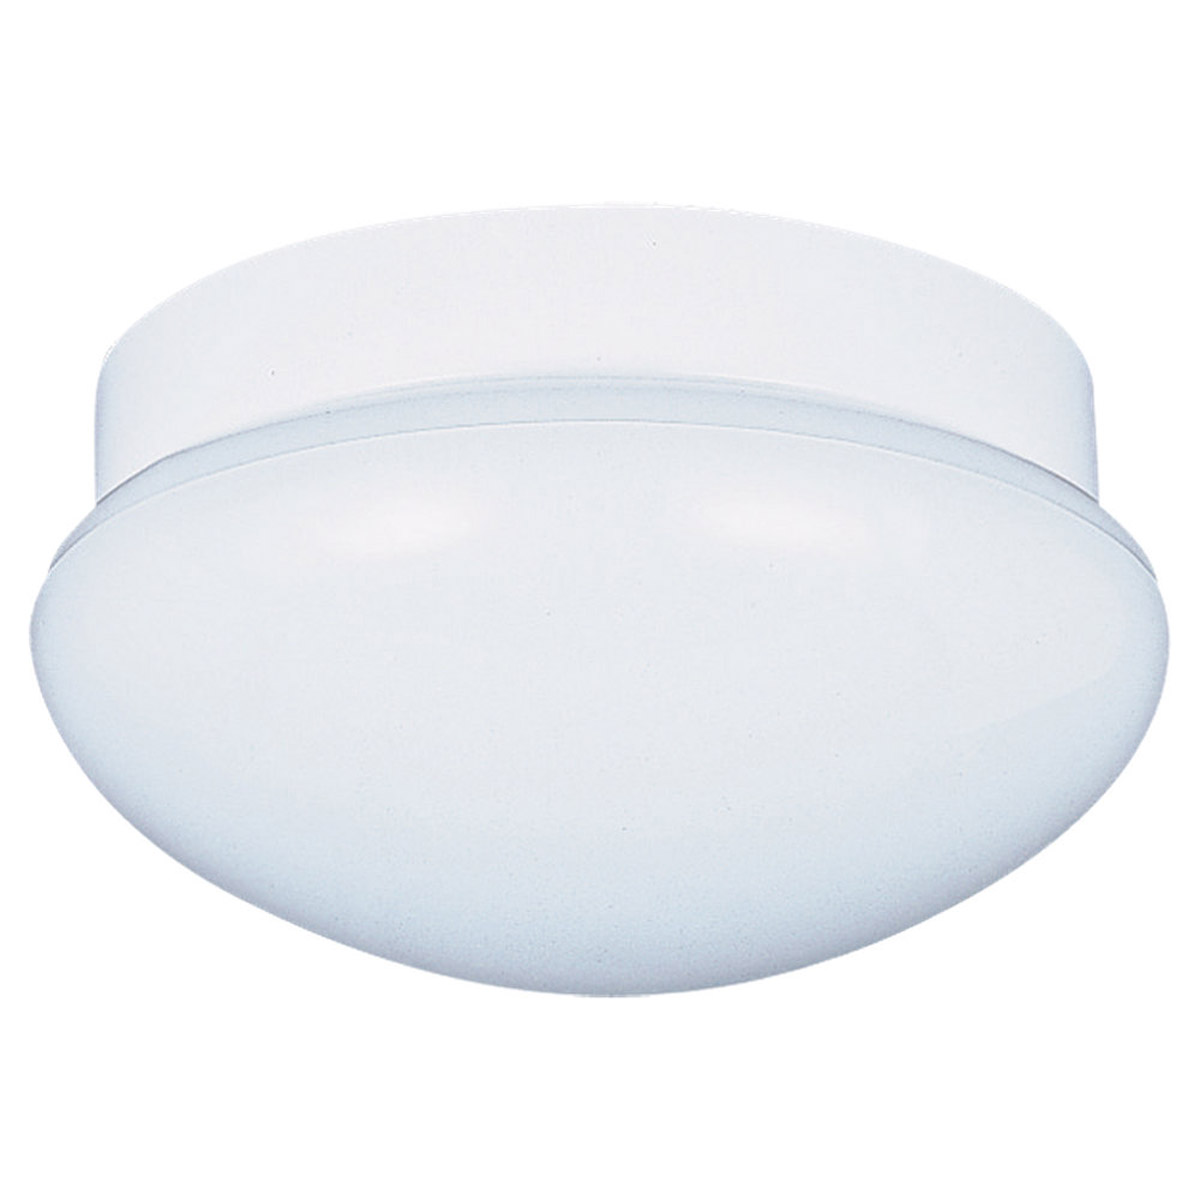 Sea Gull Lighting Flush Mount 1 Light Flush Mount in White 7638-15